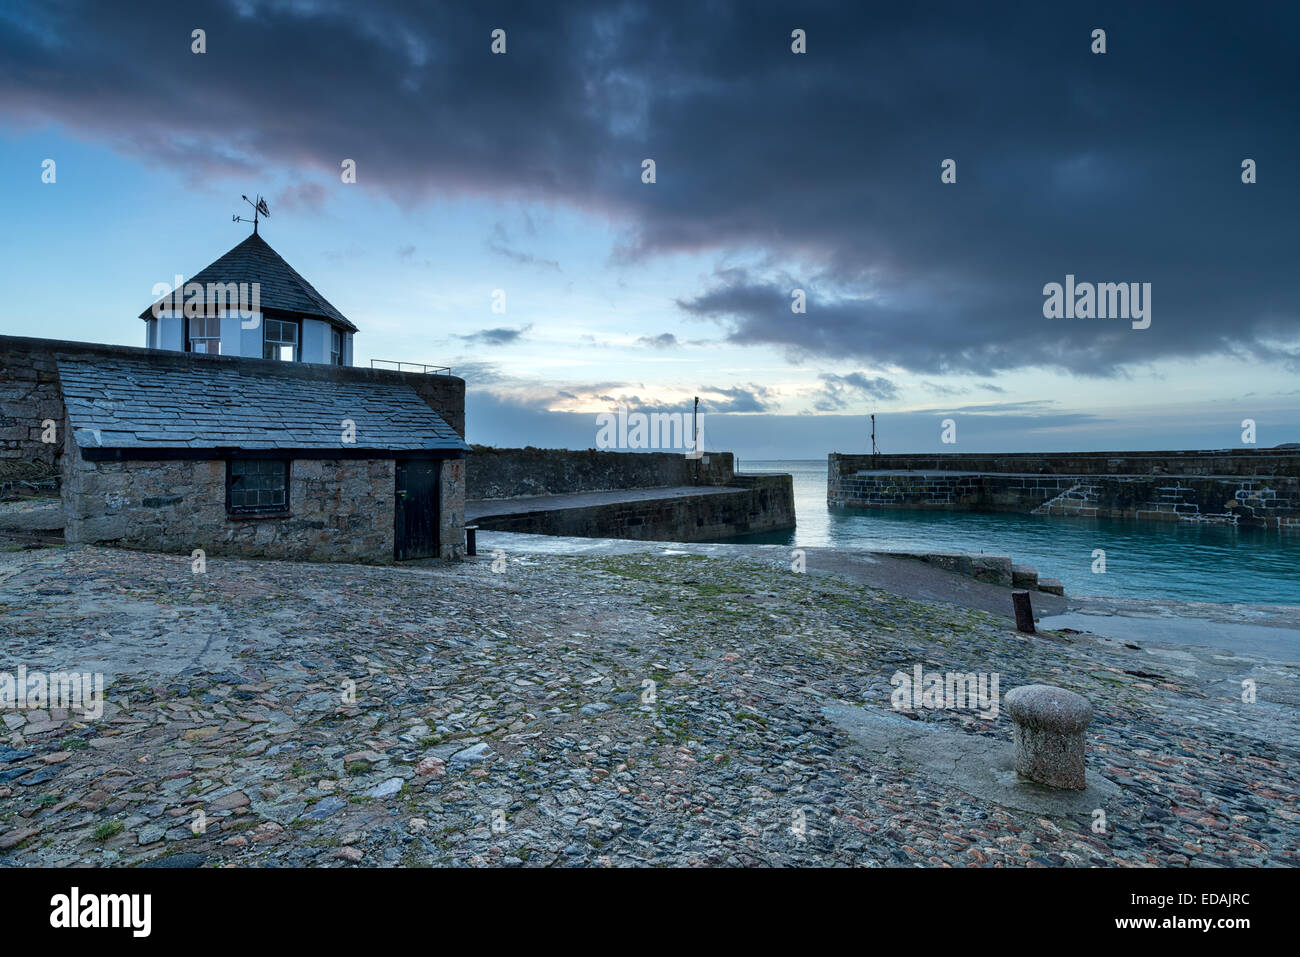 The picturesque harbour of Charlestown on the south coast of Cornwall - Stock Image